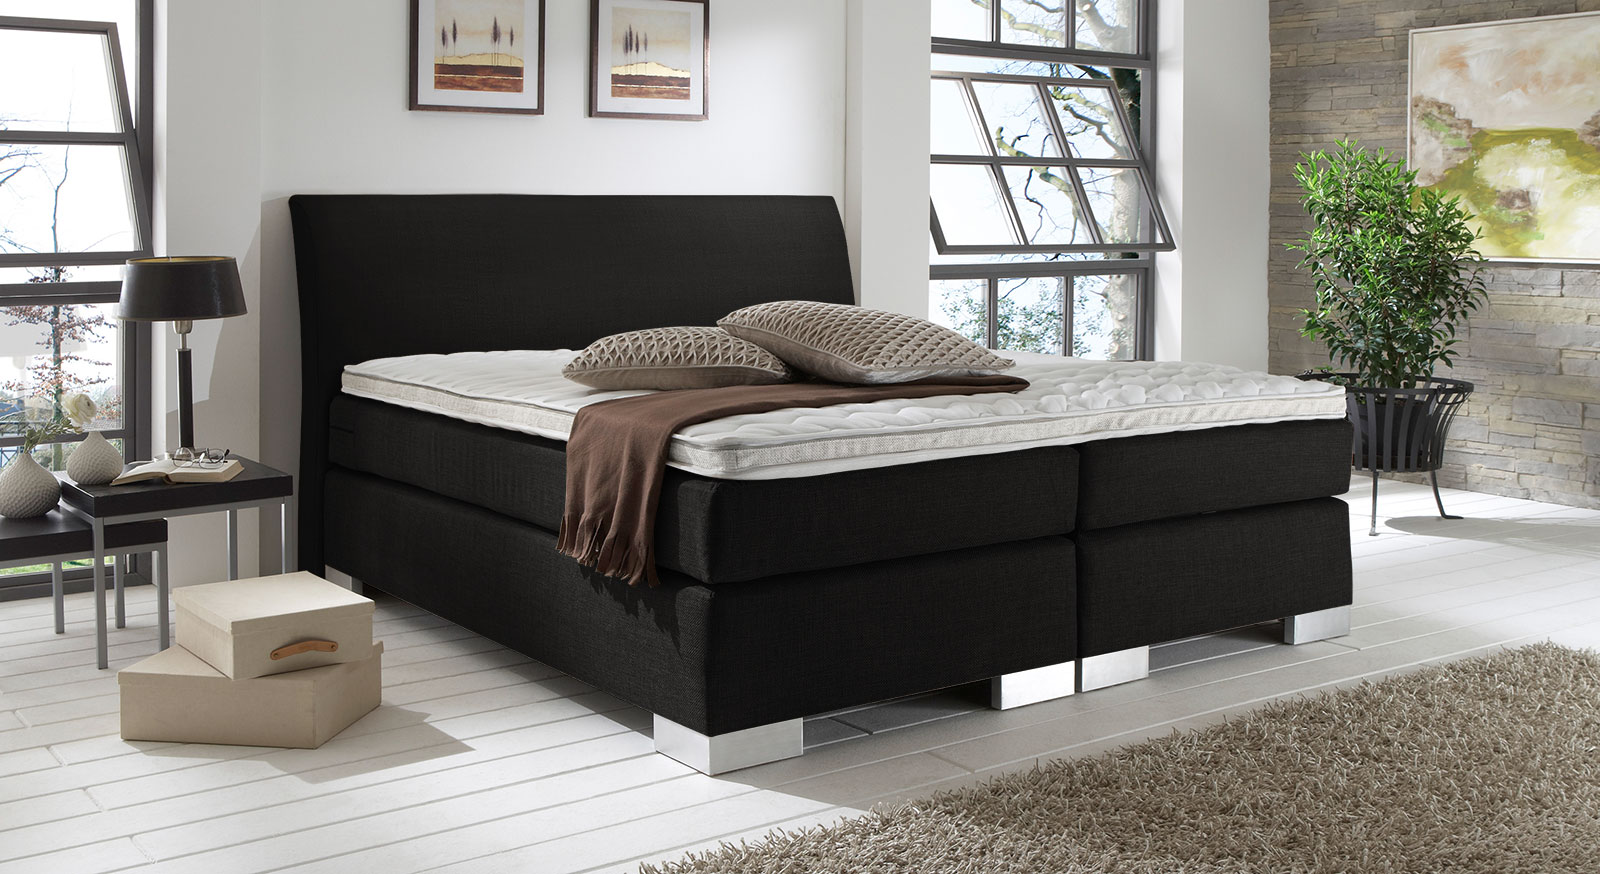 Boxspringbett Lato in schwarzem Cricket-Stoff